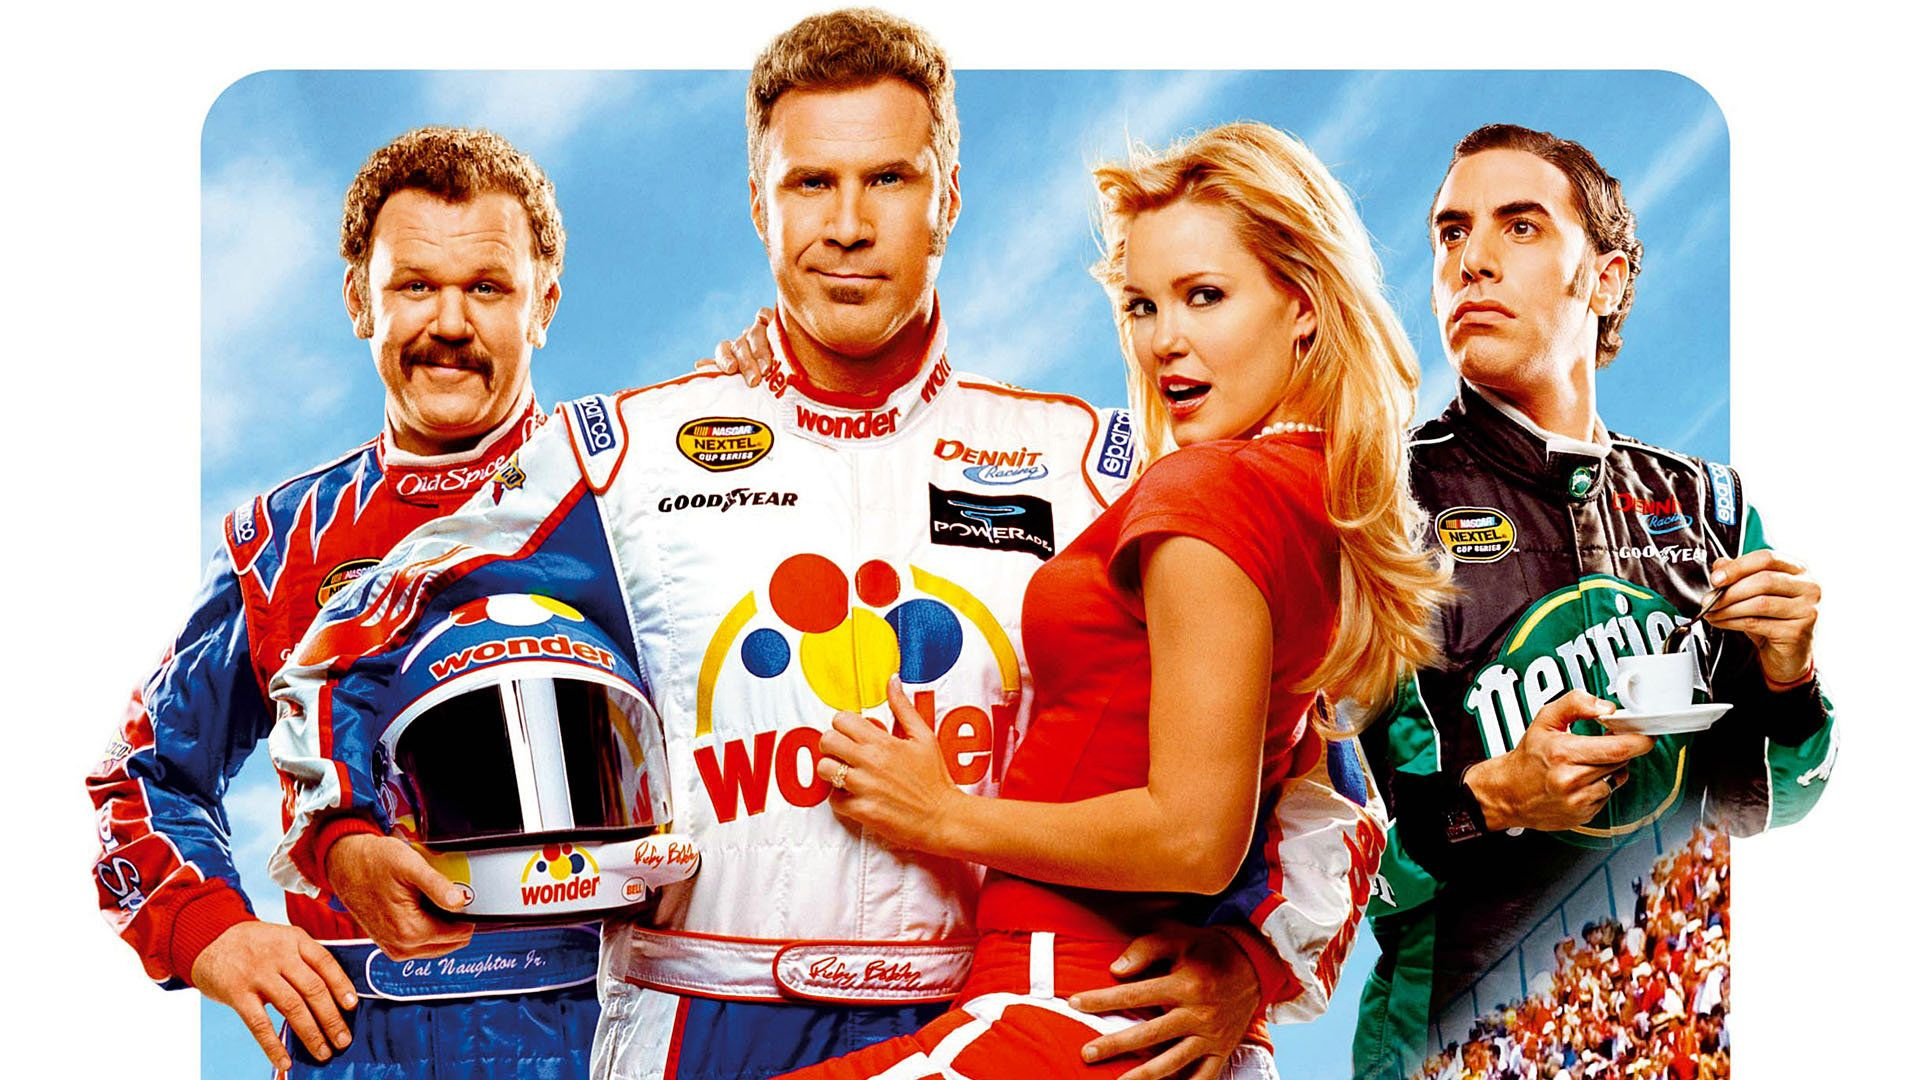 the ballad of ricky bobby Ricky bobby: dear lord baby jesus, we thank you so much for this bountiful harvest of dominos, kfc, and the always delicious taco bell i just want to take time to say thank you for my family my two sons, walker, and texas ranger, or tr as we call him.